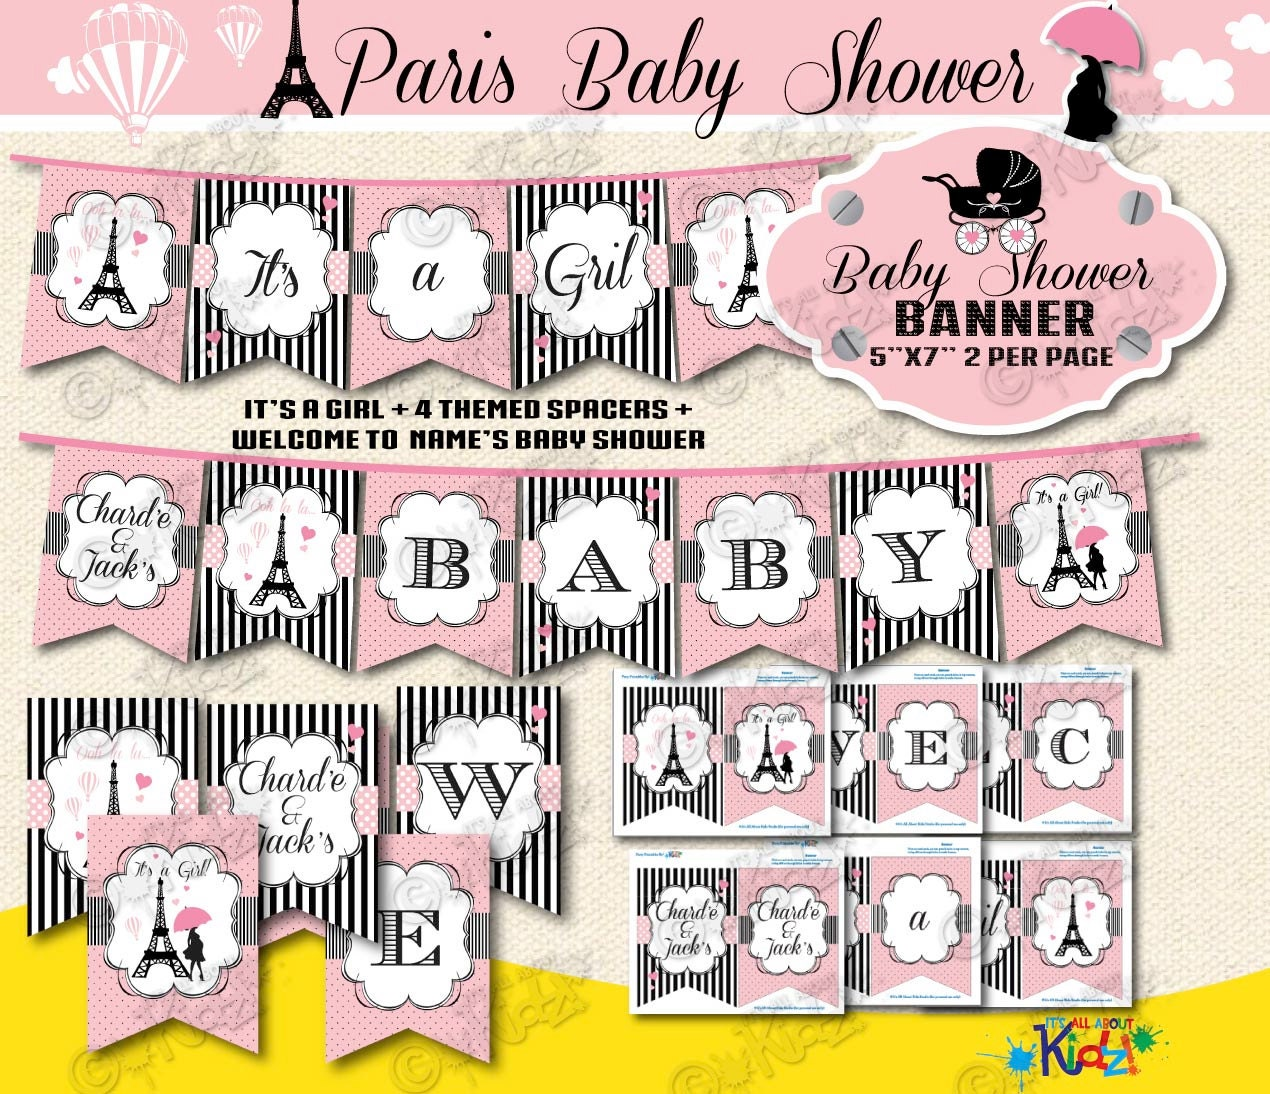 Baby Shower Custom Banners: Personalized Paris Baby Shower Banners Printable Baby Shower